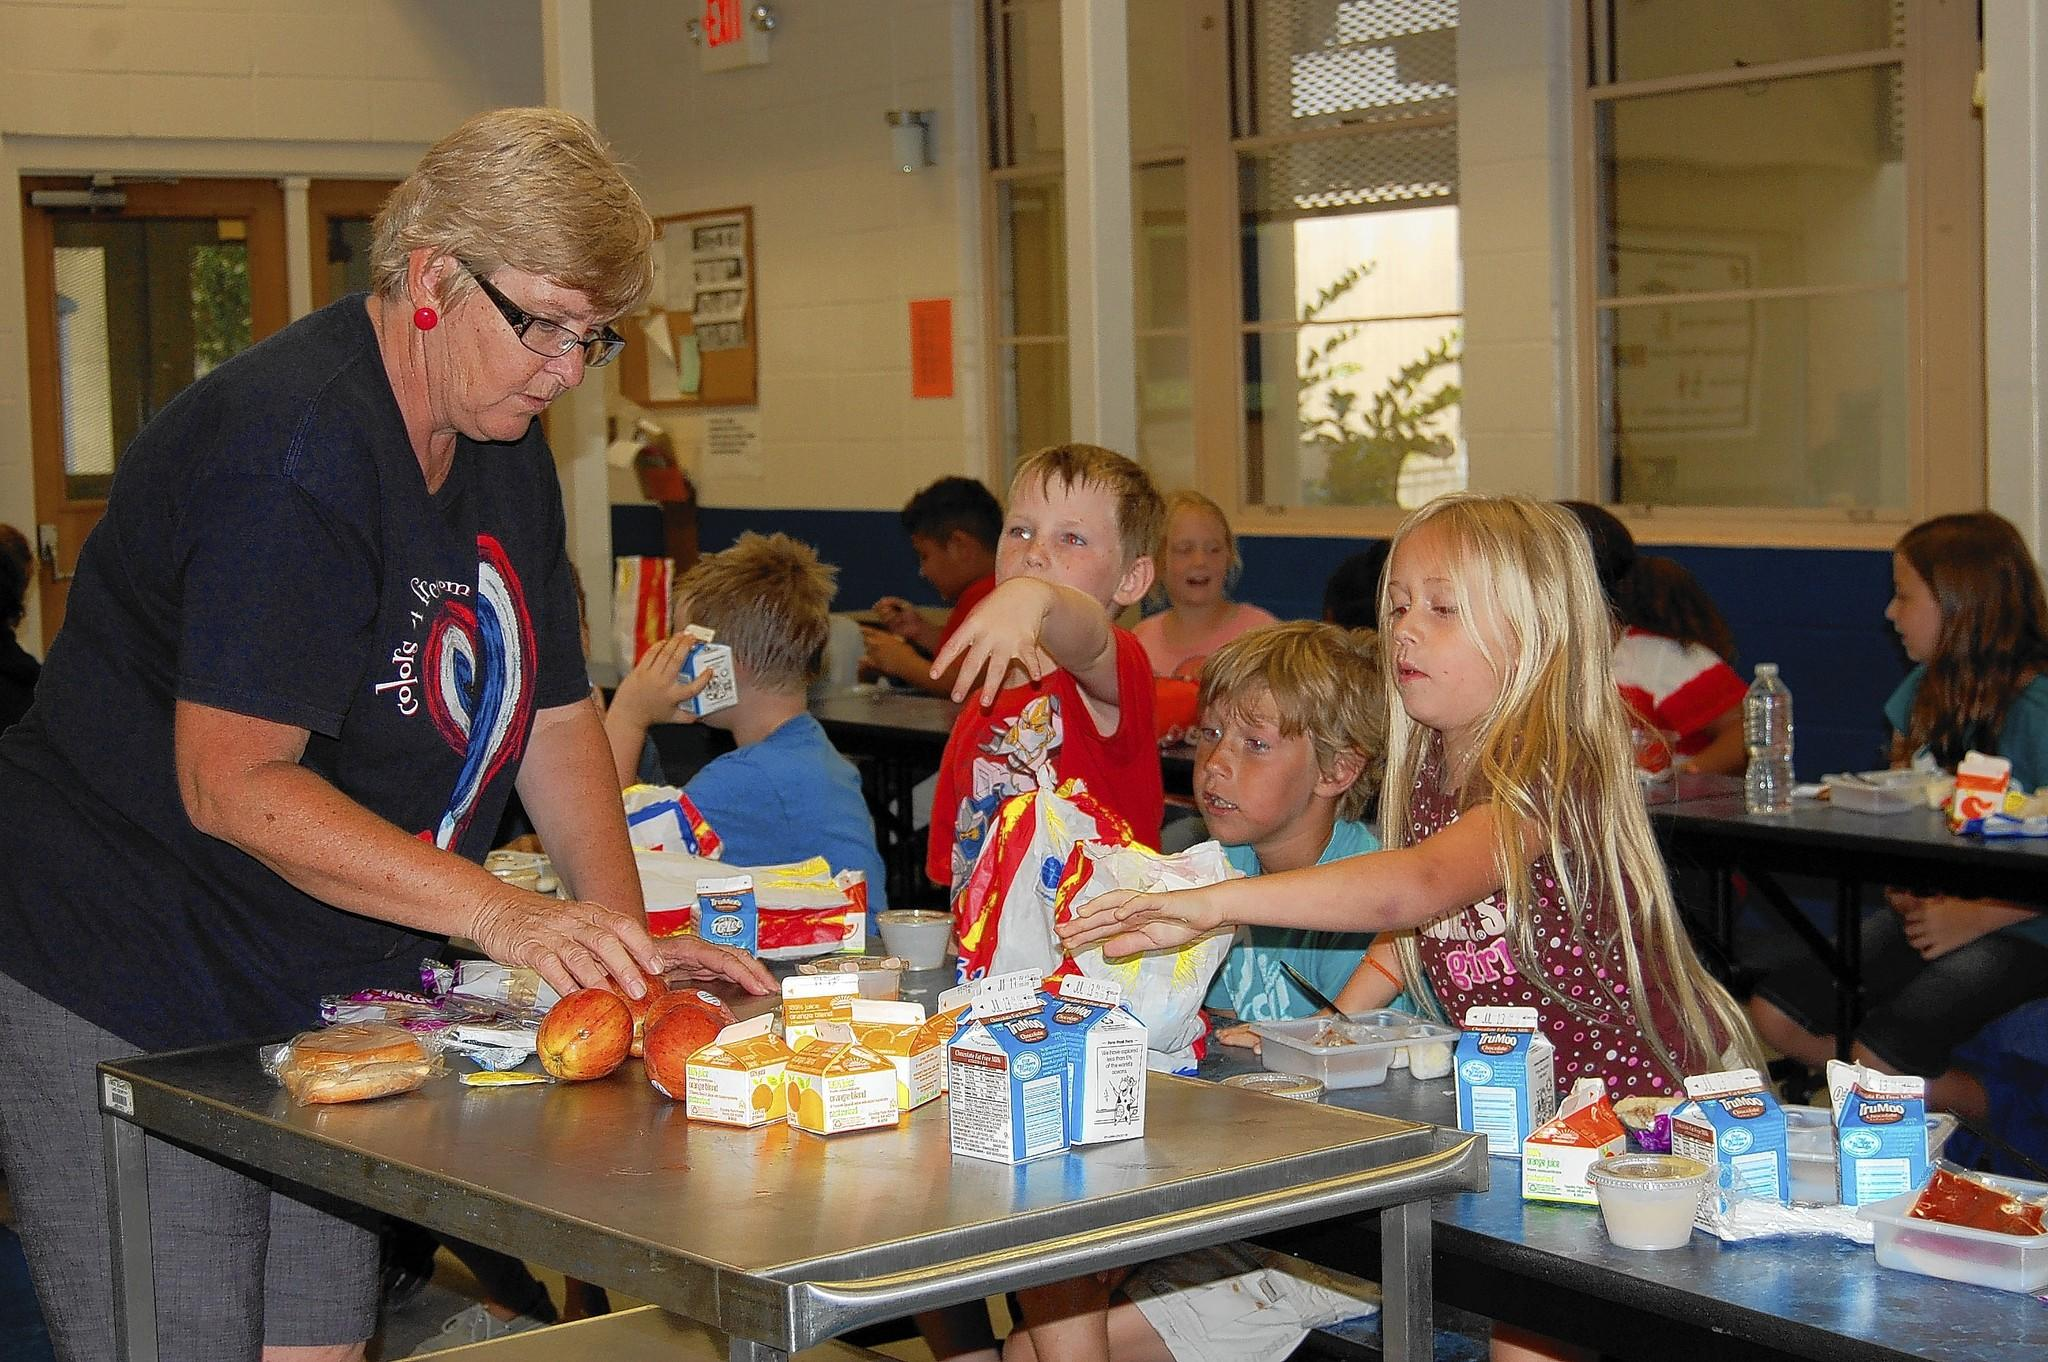 Kim Brown, left, serves free food to children at Eustis Elementary School.